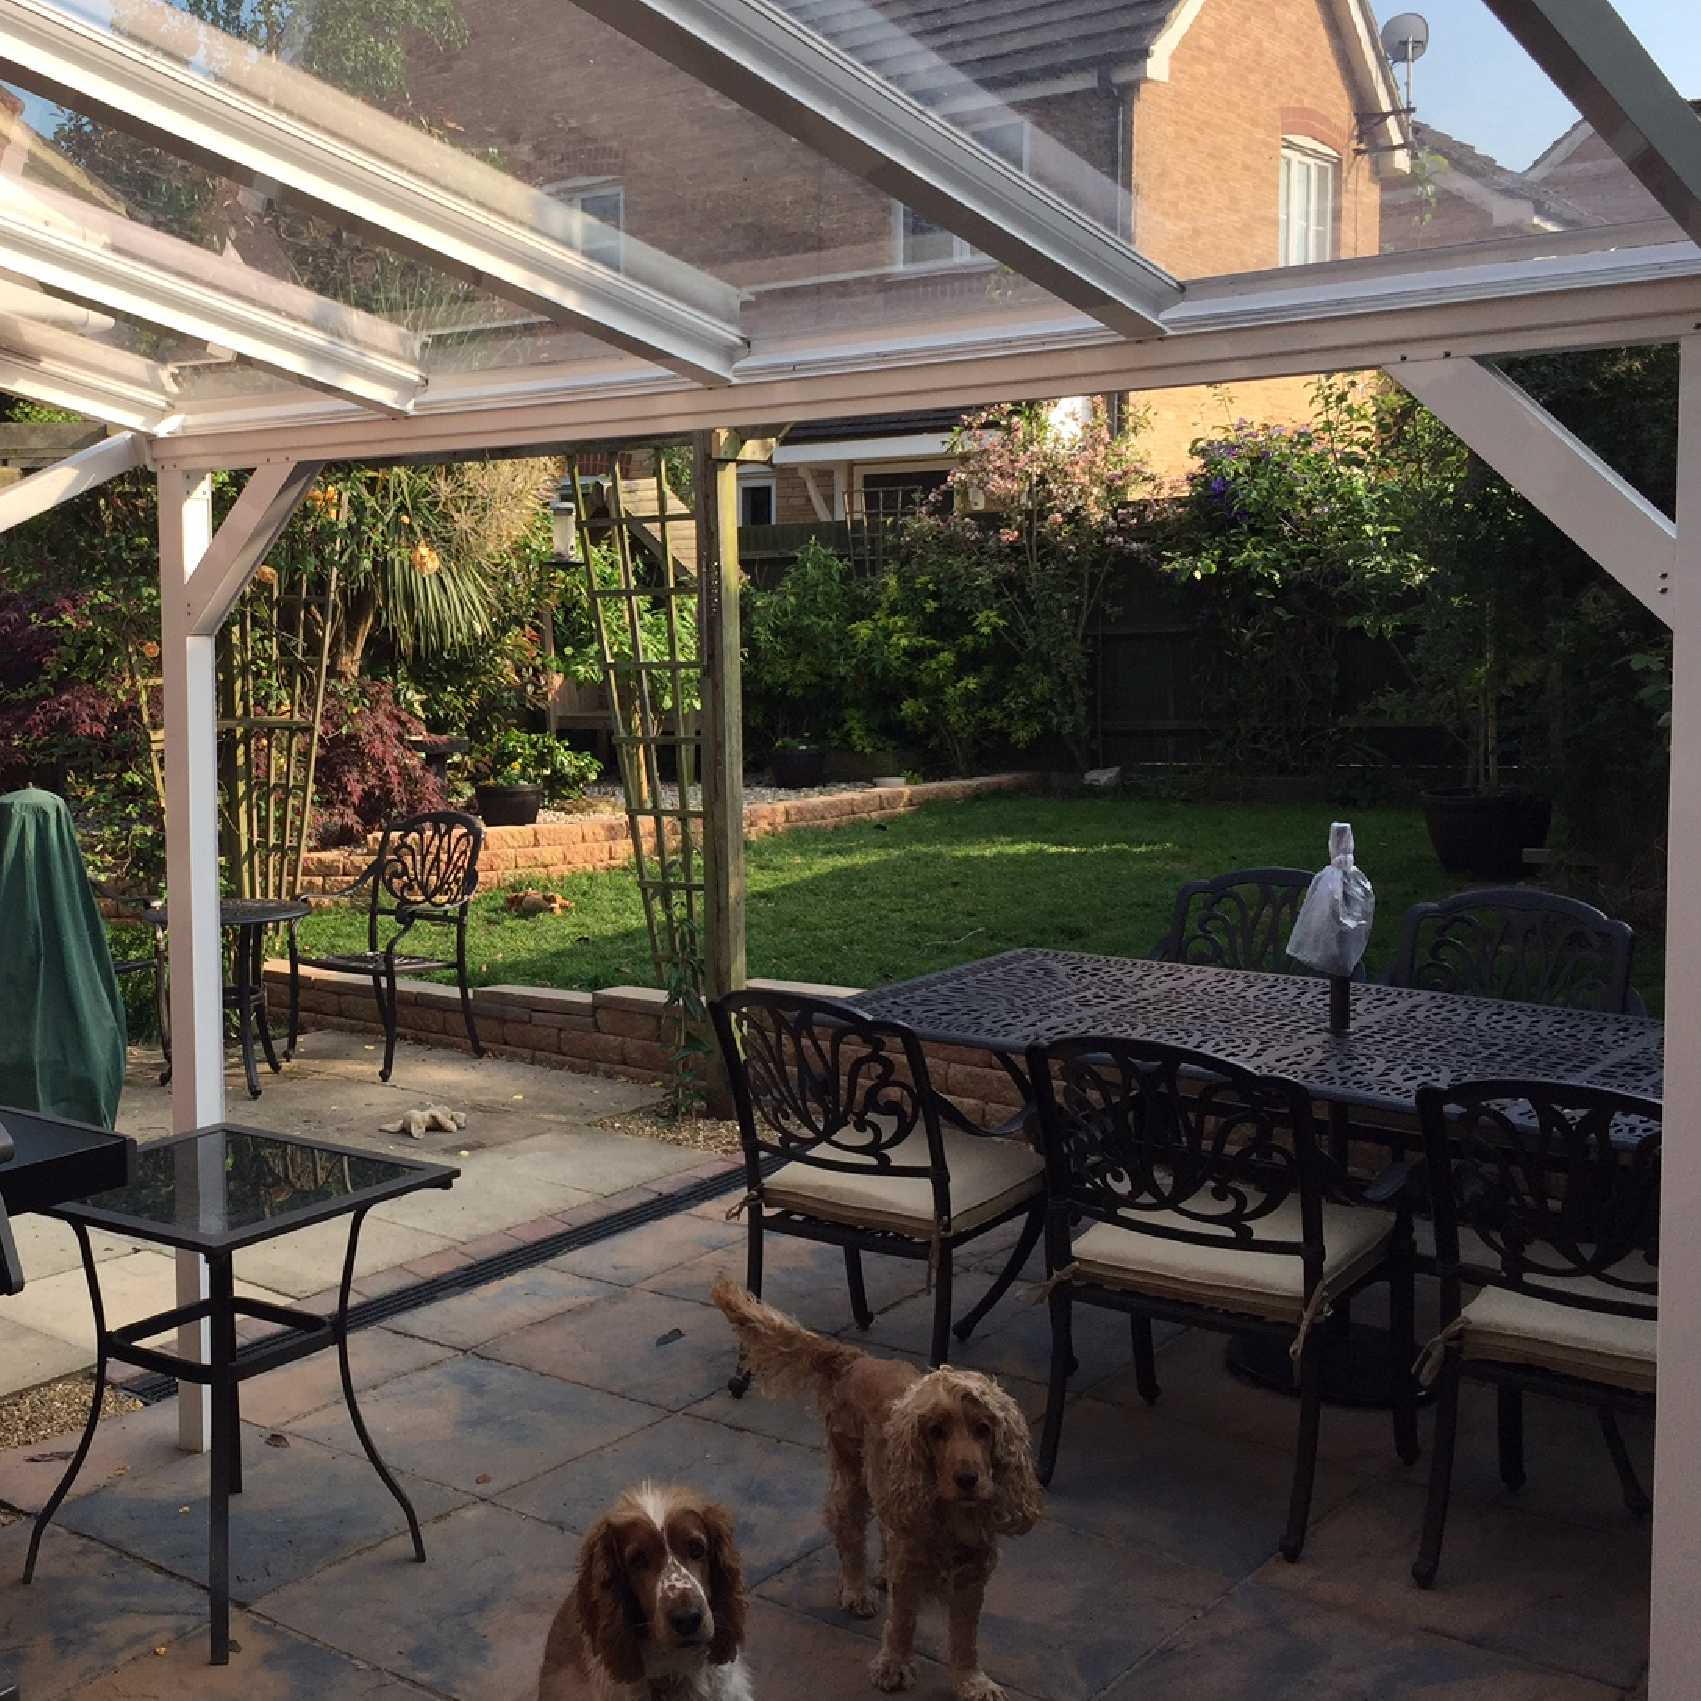 Affordable Omega Smart Lean-To Canopy with 6mm Glass Clear Plate Polycarbonate Glazing - 3.5m (W) x 3.5m (P), (3) Supporting Posts